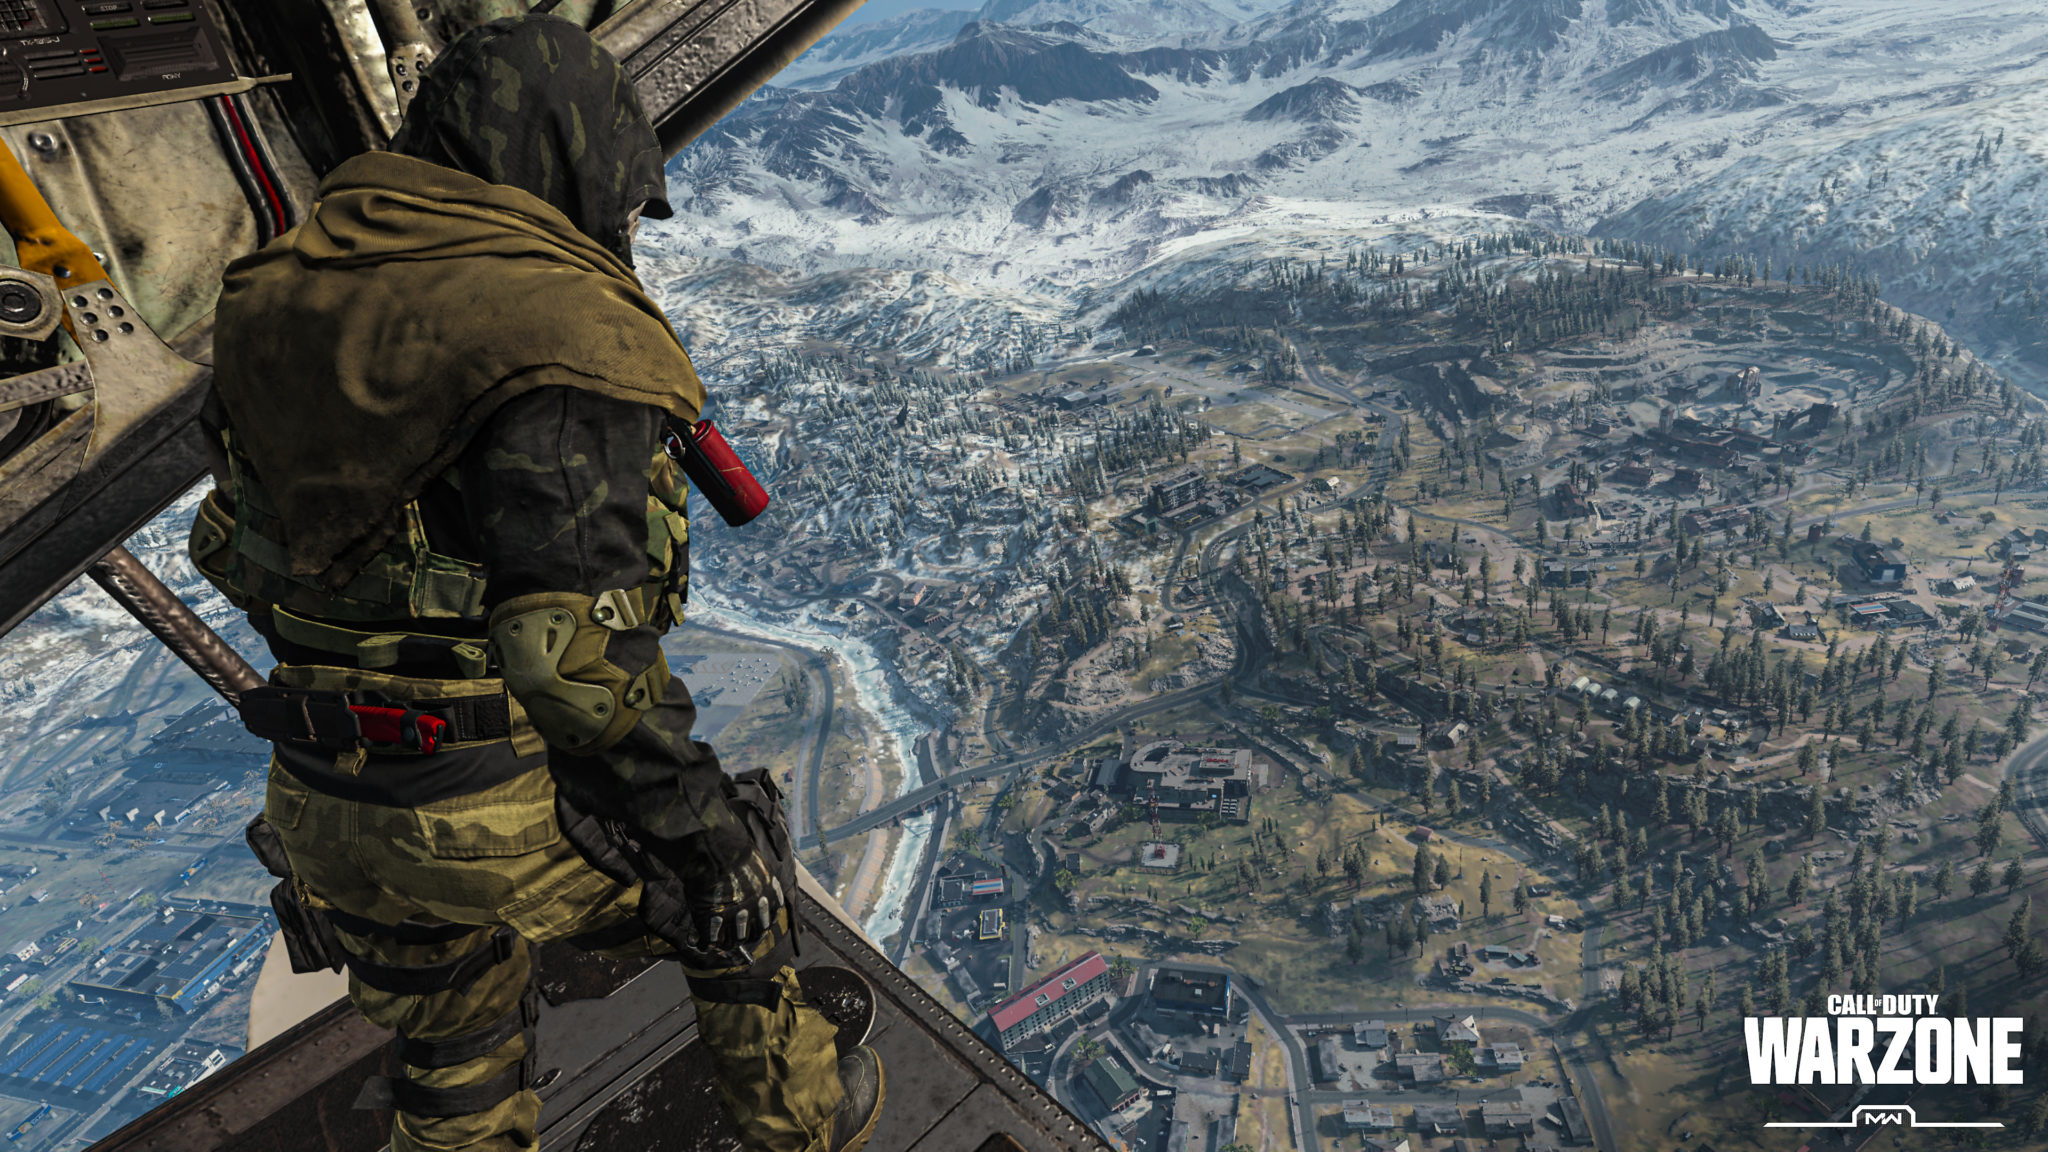 Player looking into Verdansk on Warzone.